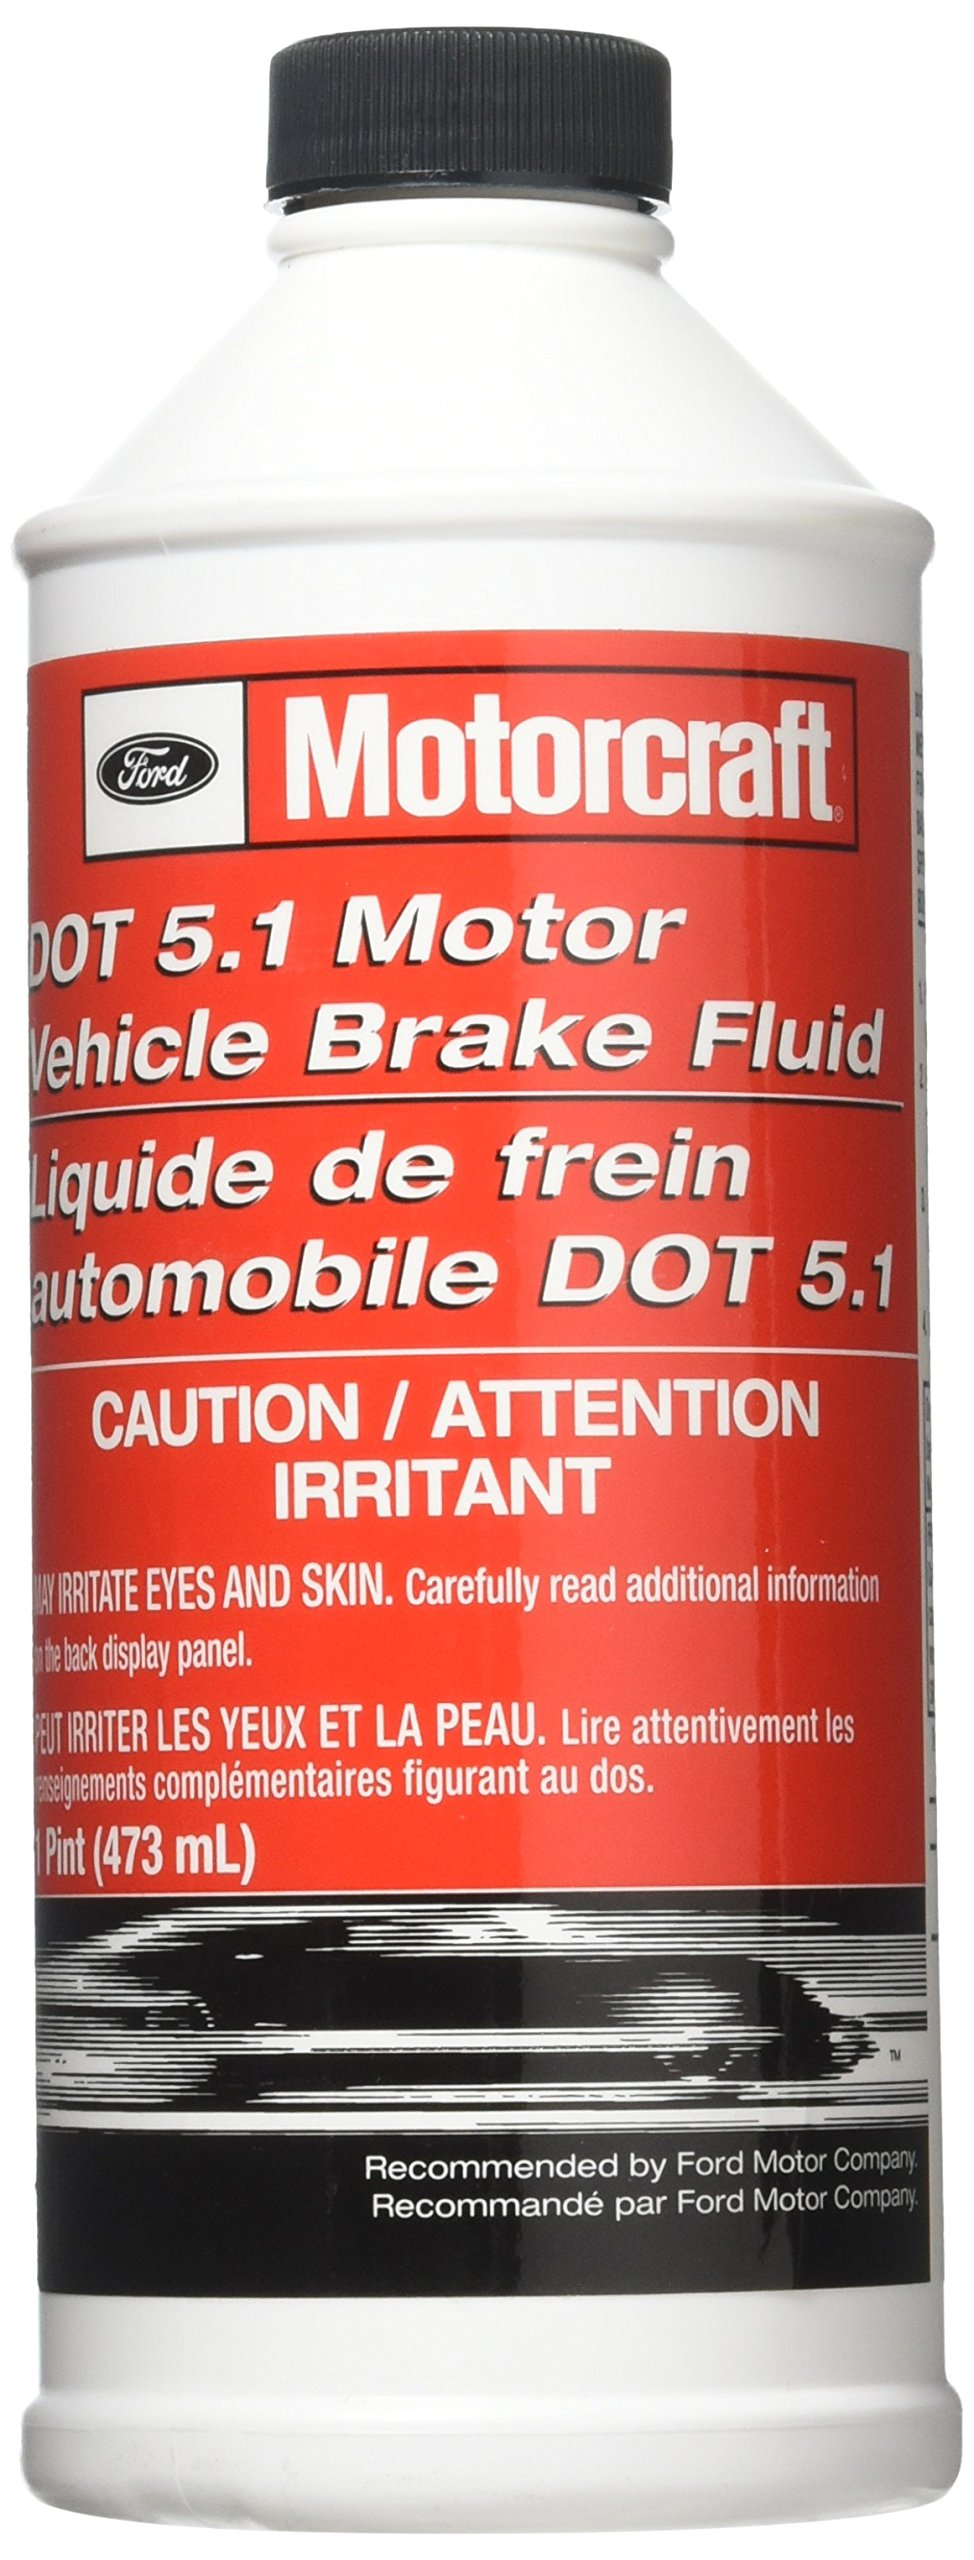 Motorcraft PM21 Brake Fluid by Motorcraft